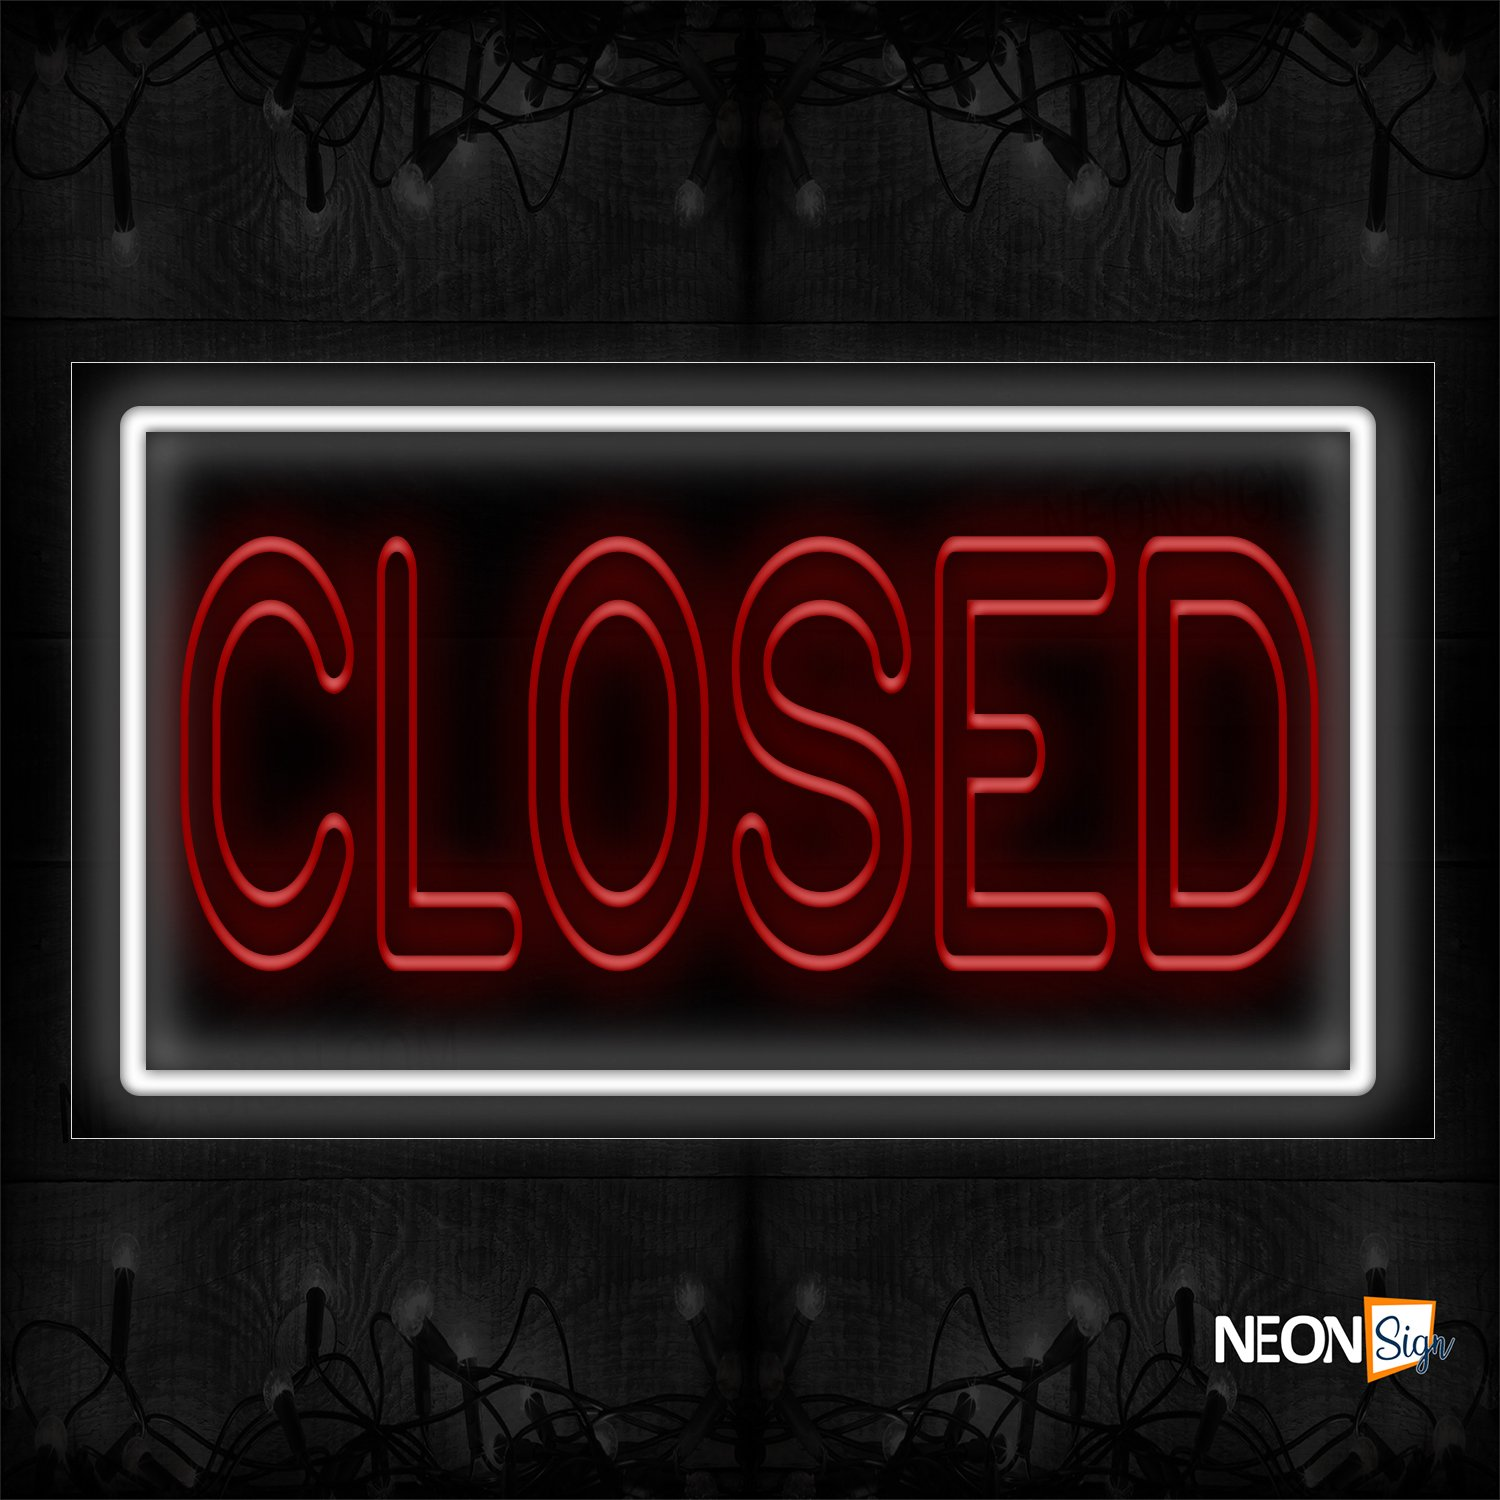 Image of Closed With White Border Traditional Neon